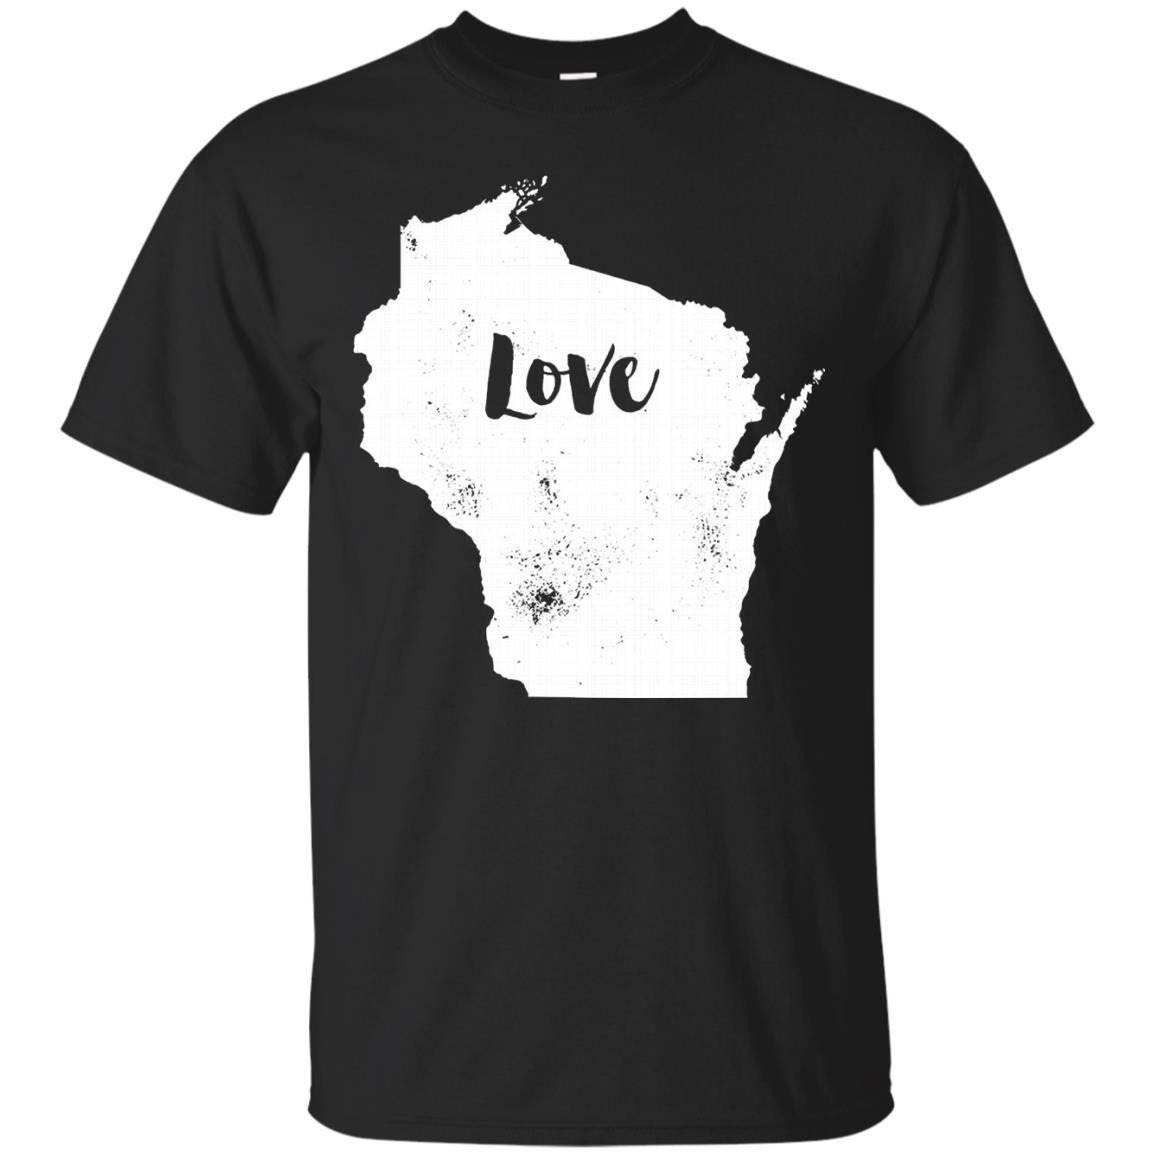 Love Shirt Wisconsin – Wisconsin Love State Shirt – T-Shirt